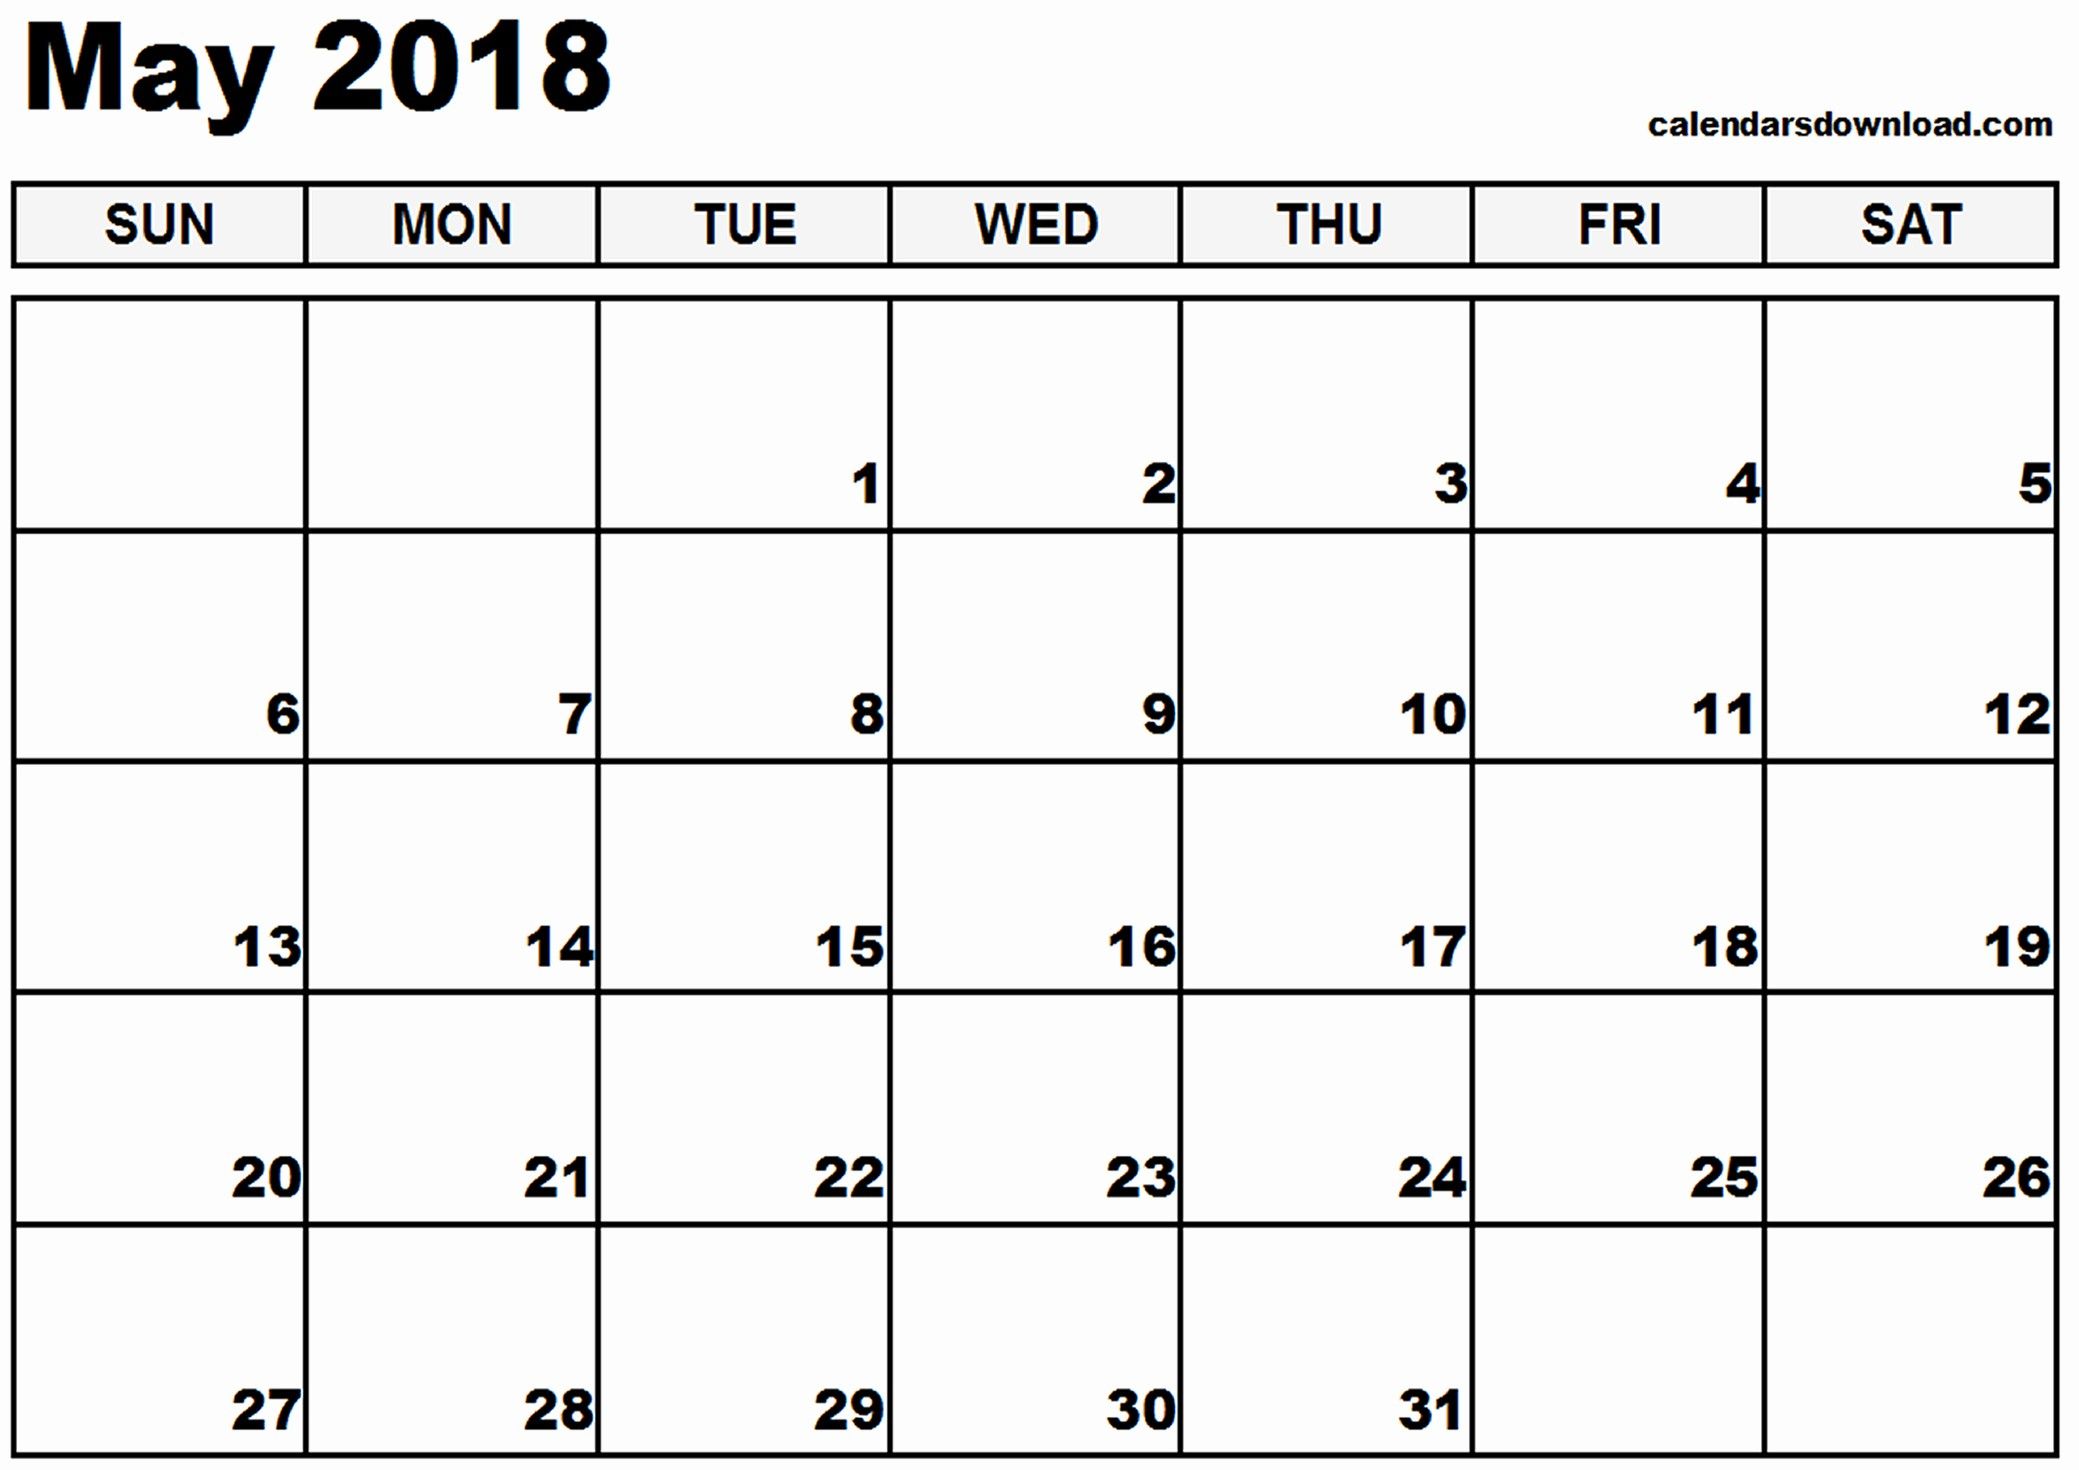 Free May 2018 Calendar Template Awesome May 2018 Printable Calendar